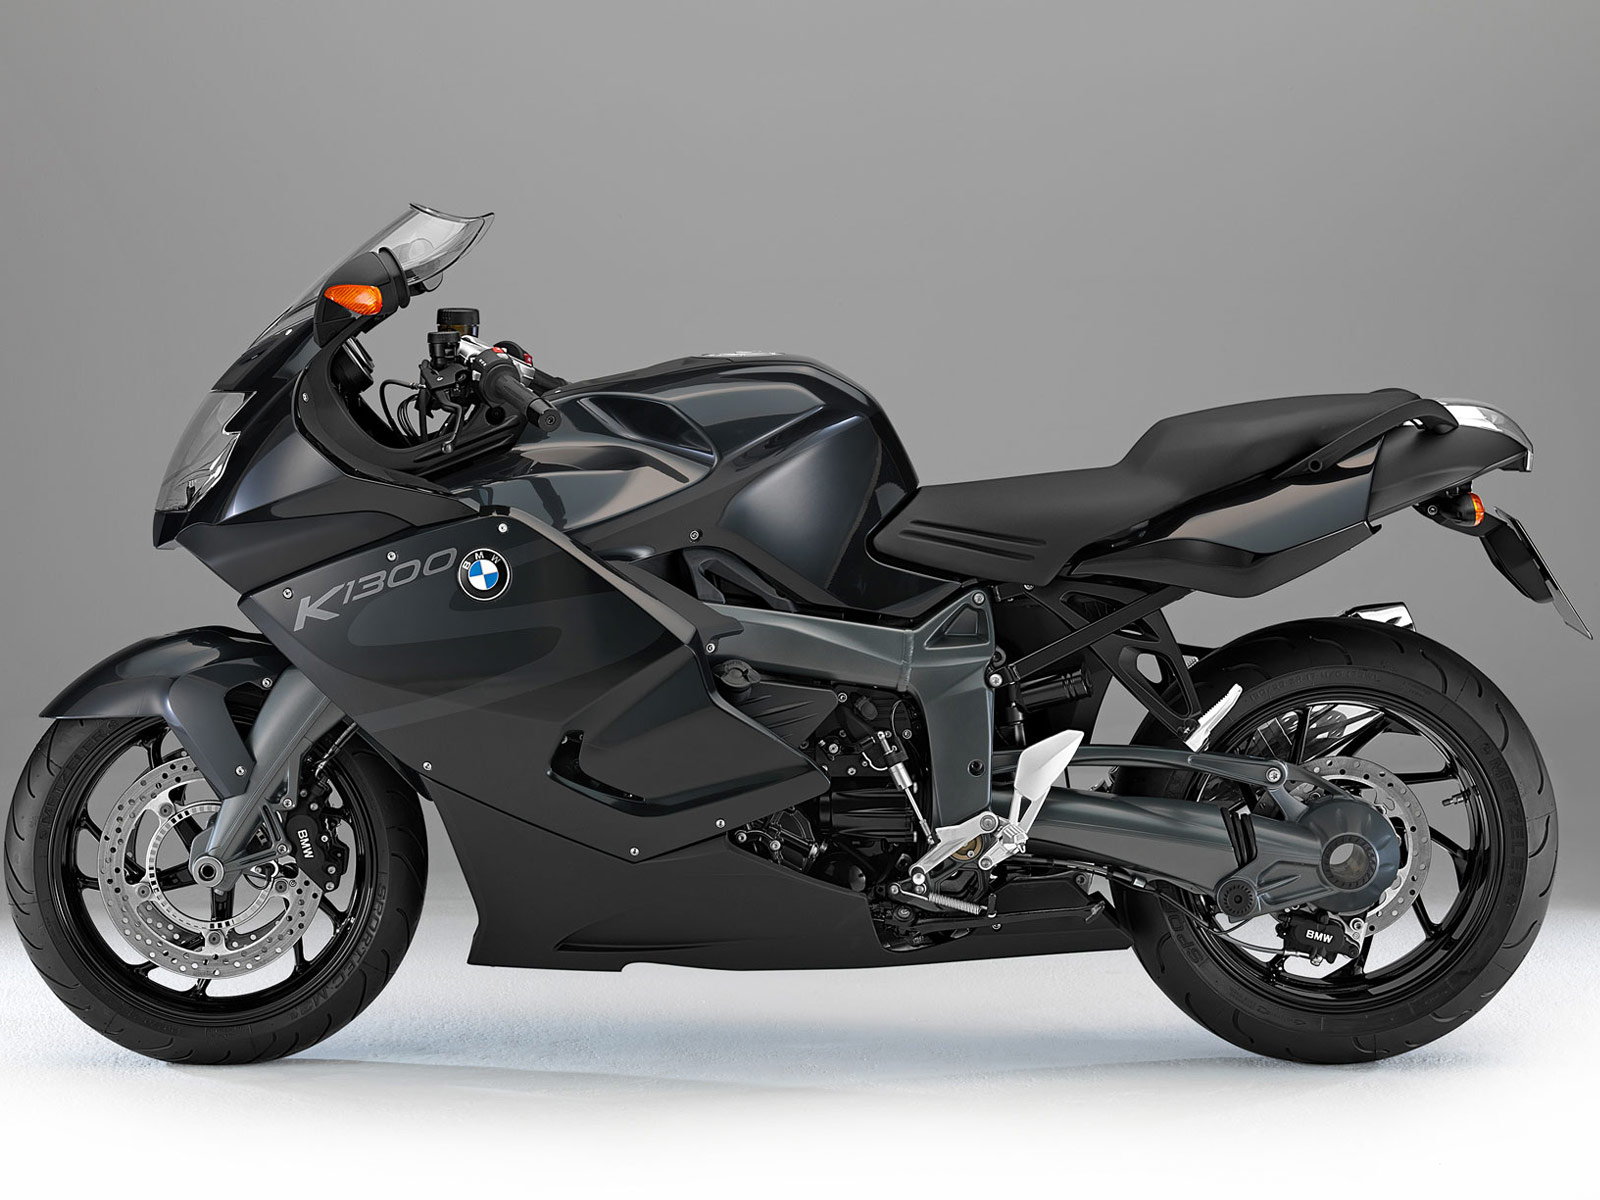 bmw k1300s 2013 bike special. Black Bedroom Furniture Sets. Home Design Ideas